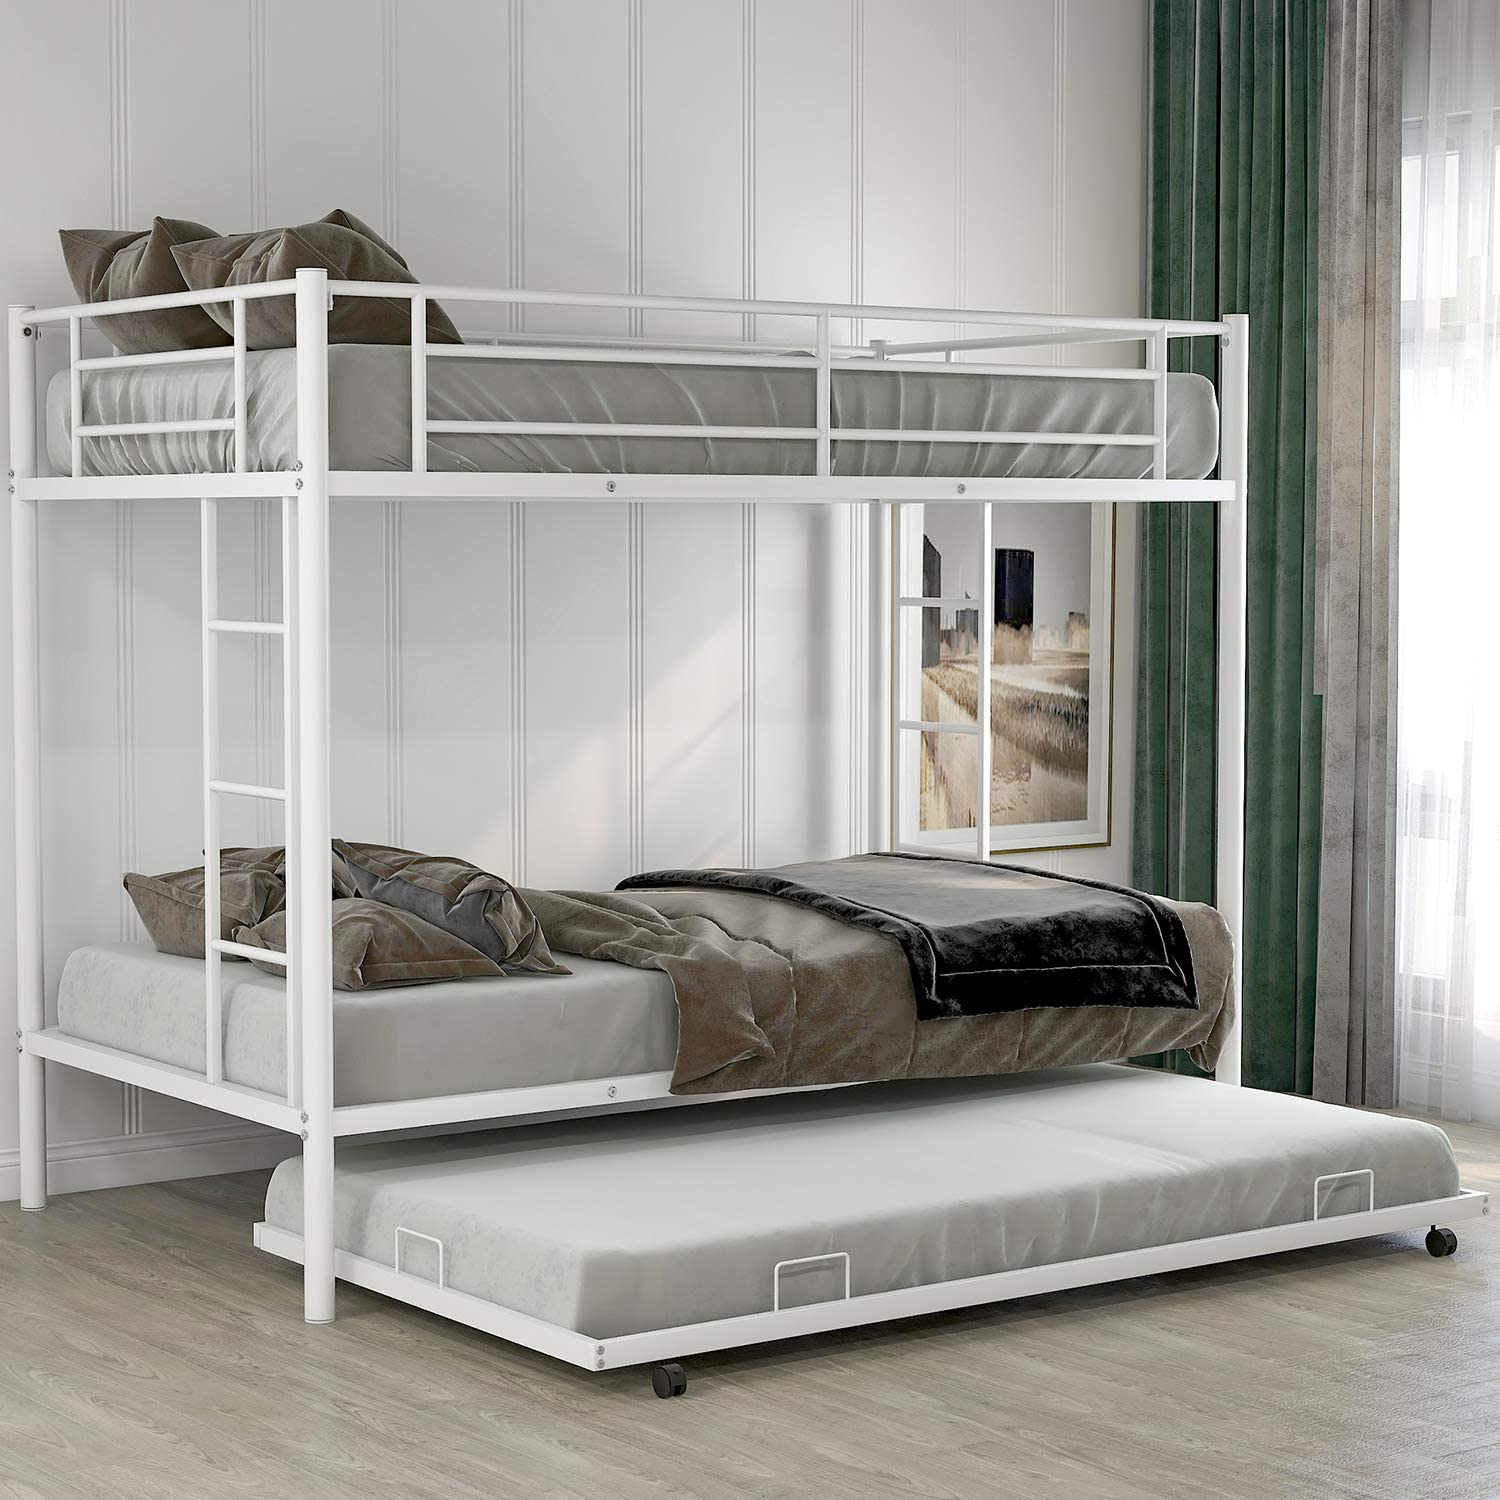 Twin Over Twin Metal Bunk Bed with Trundle, Rockjame Space Saving Design Sleeping Bedroom Bed Frame with 2 Ladders and Safety Rail for Boys, Girls, Kids, Young Teens and Adults (White)